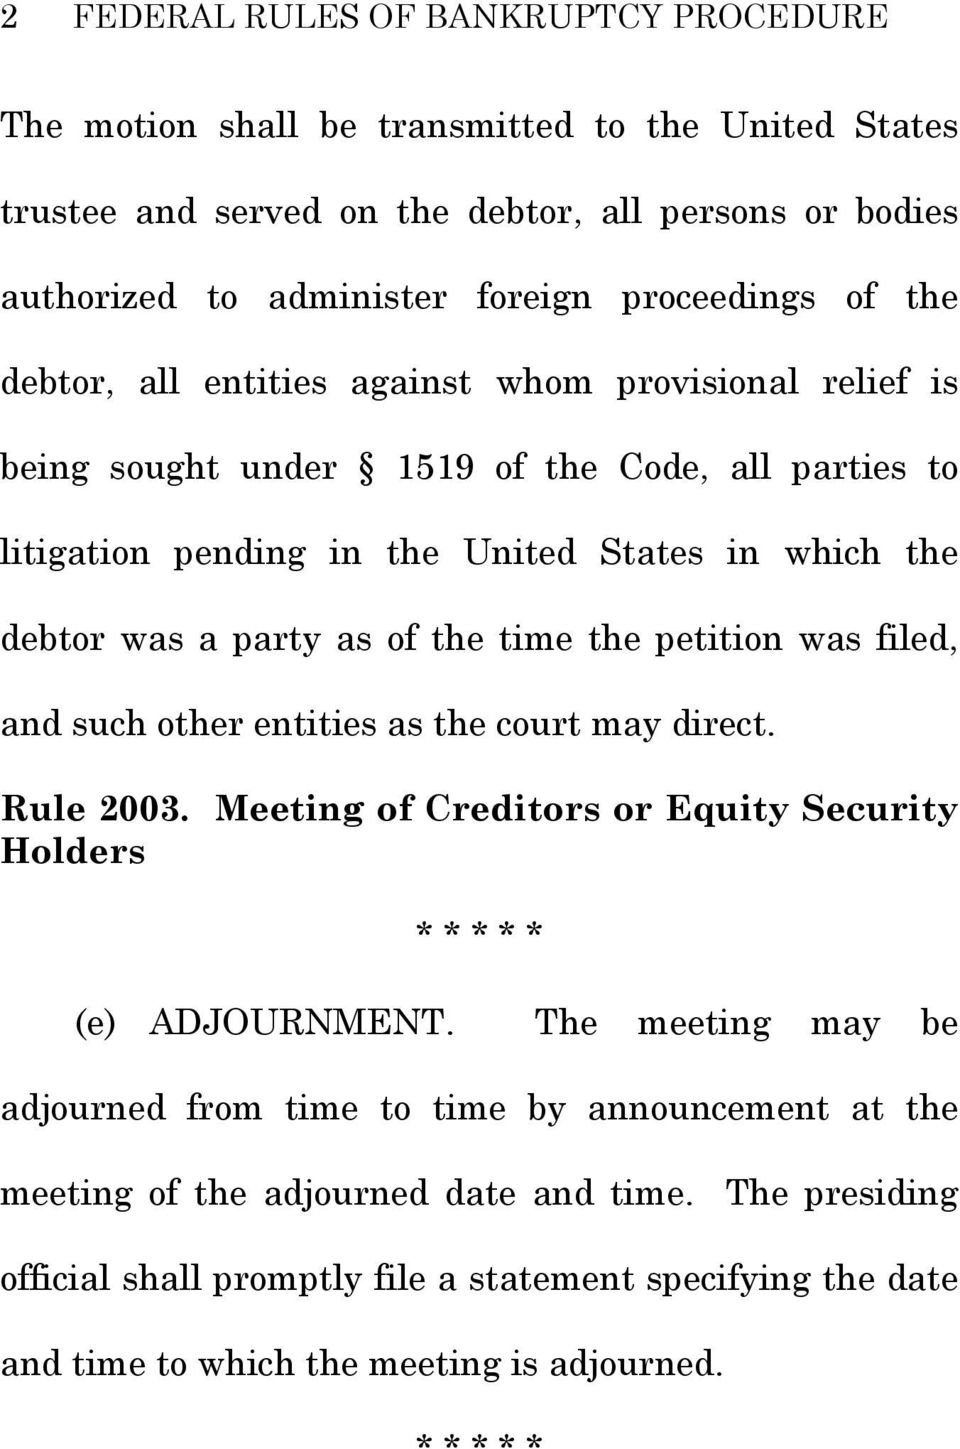 the petition was filed, and such other entities as the court may direct. Rule 2003. Meeting of Creditors or Equity Security Holders * * * * * (e) ADJOURNMENT.